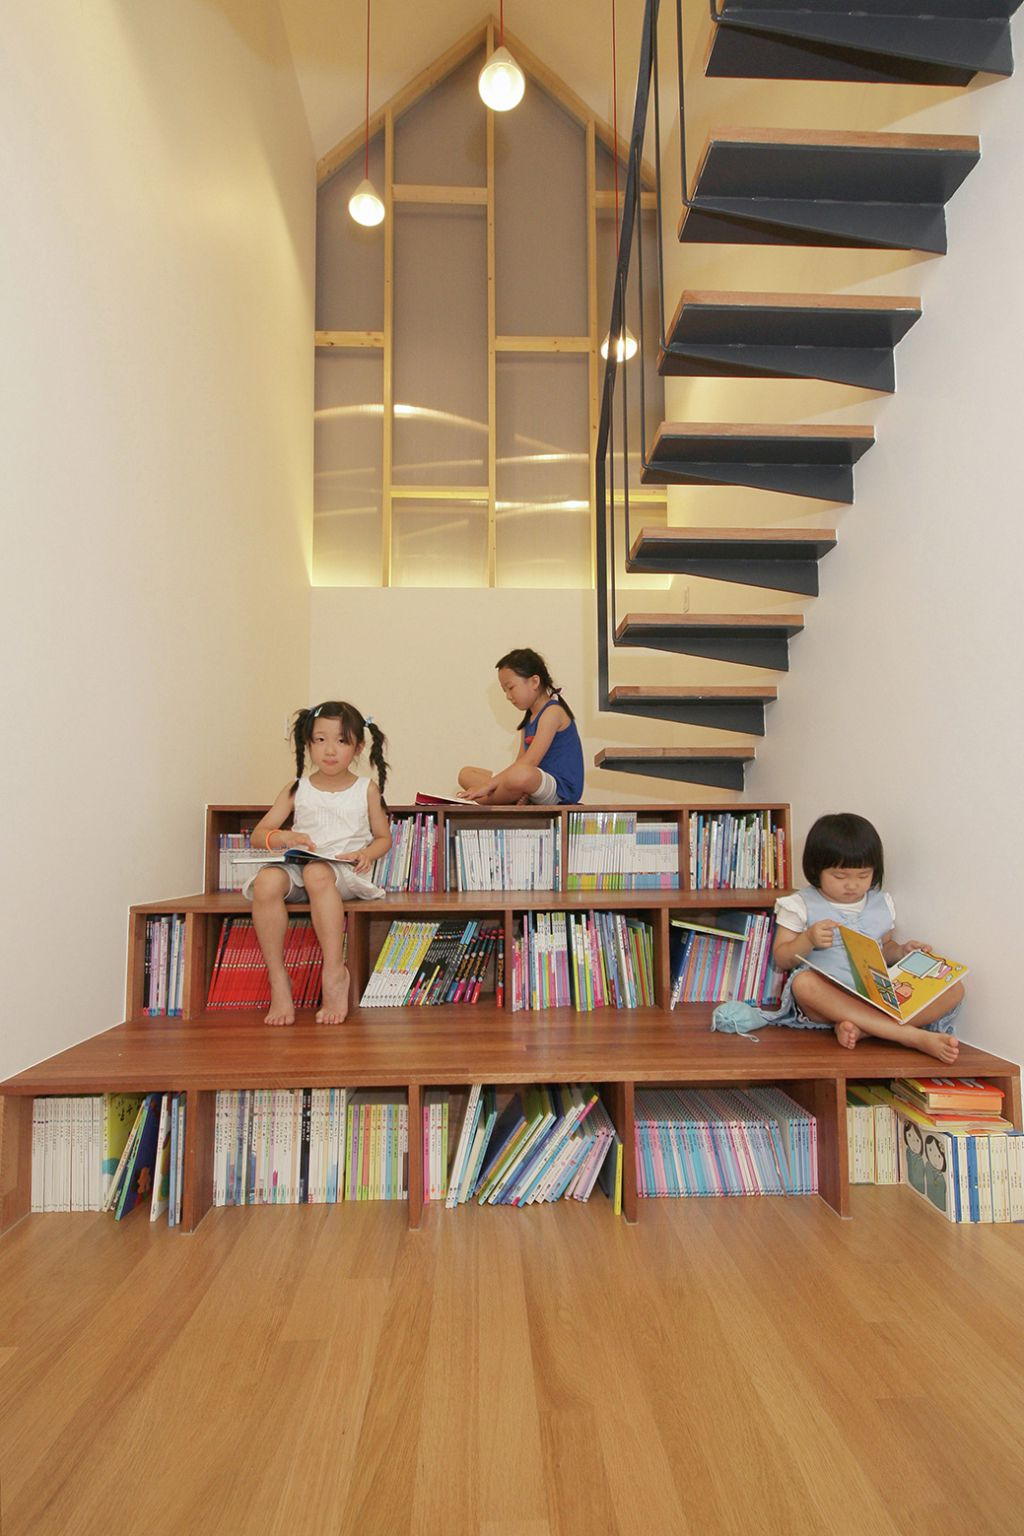 Library stairs - fancy-deco.com.